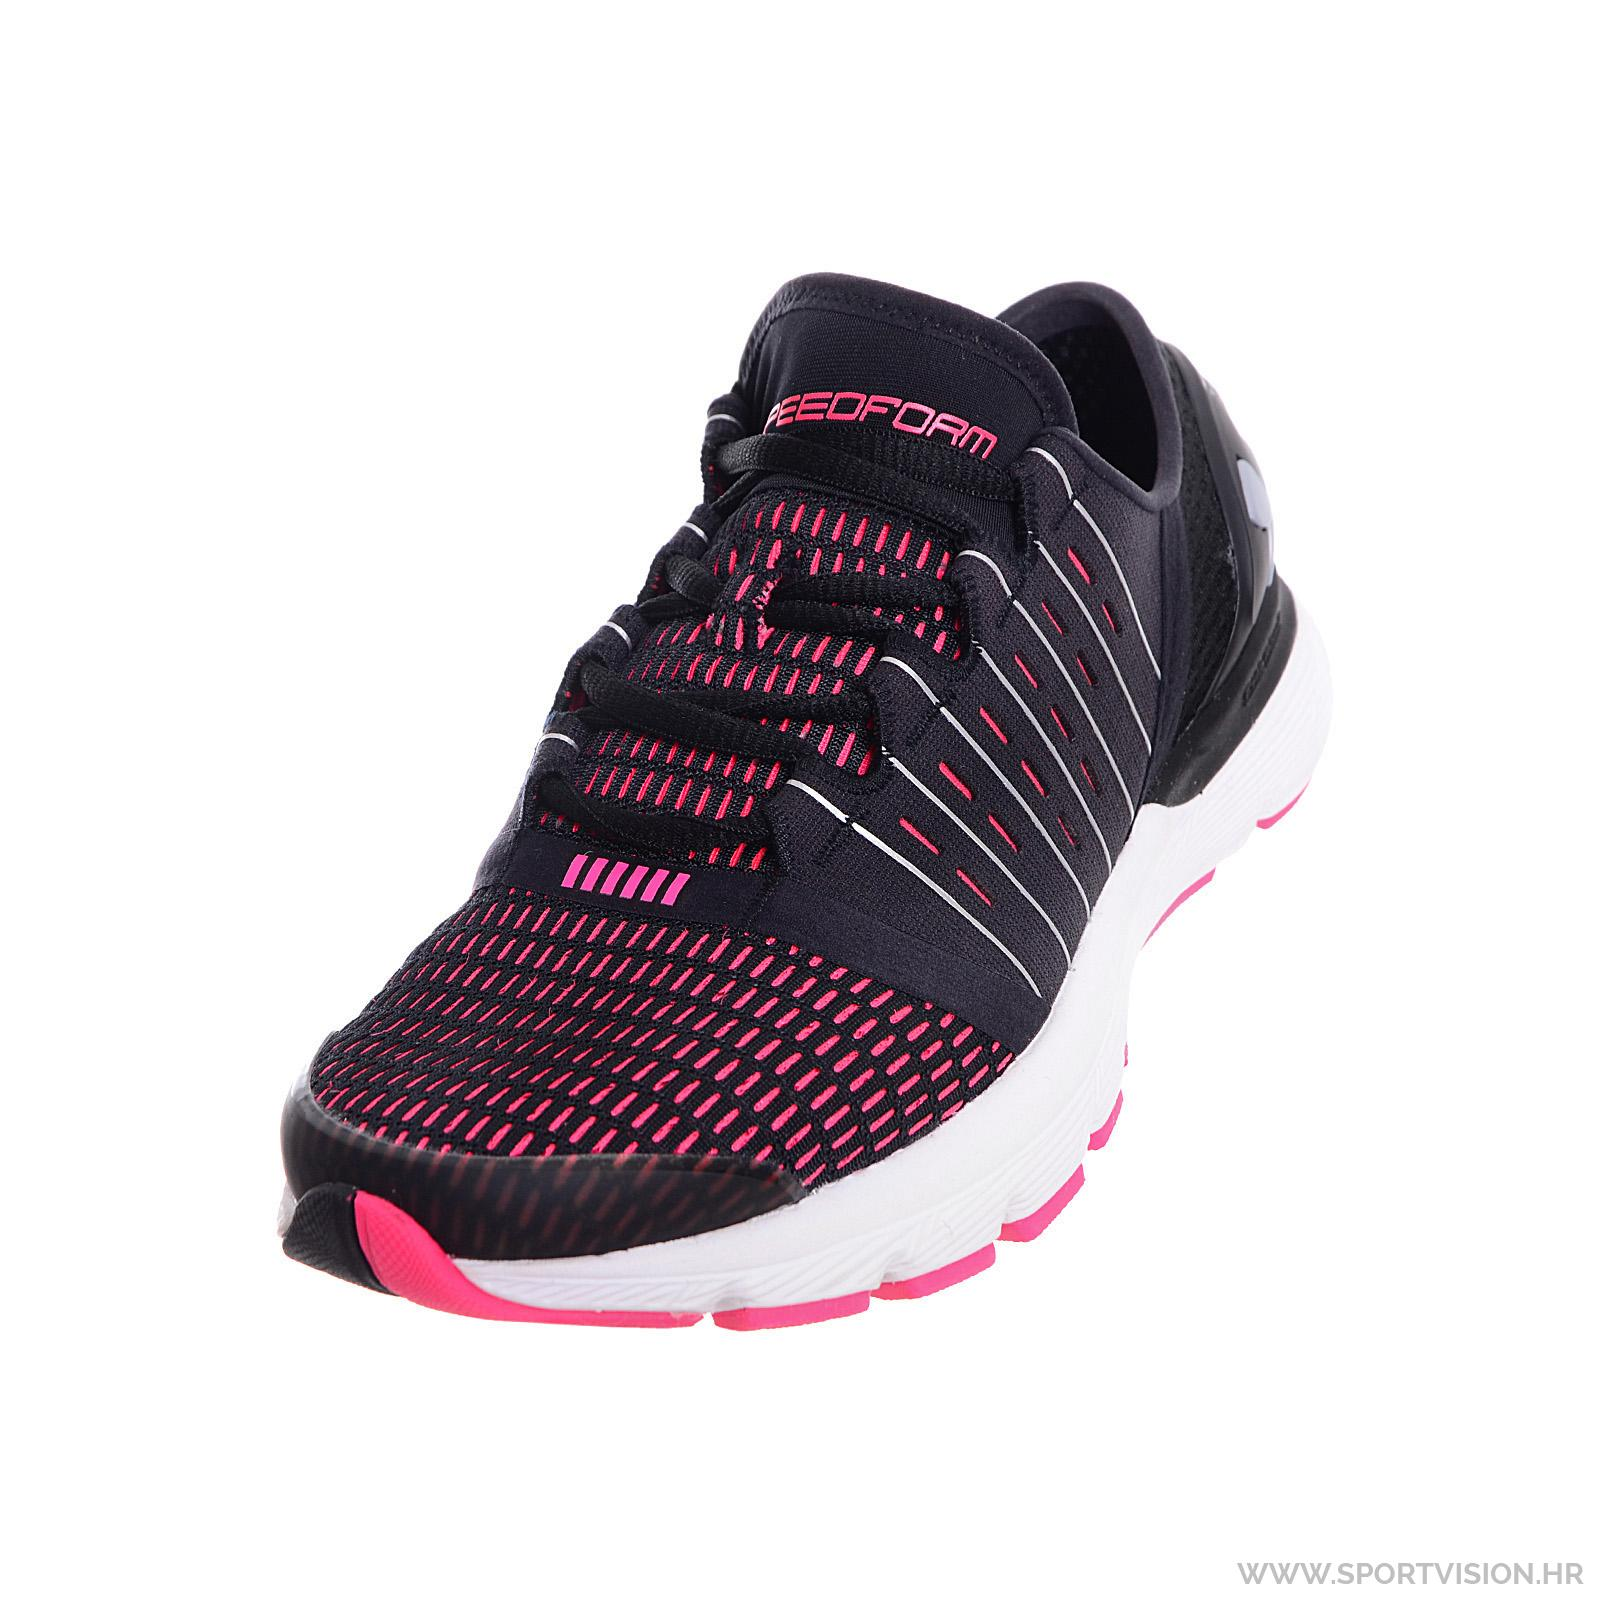 UNDER ARMOUR tenisice W SPEEDFORM EUROPA UND